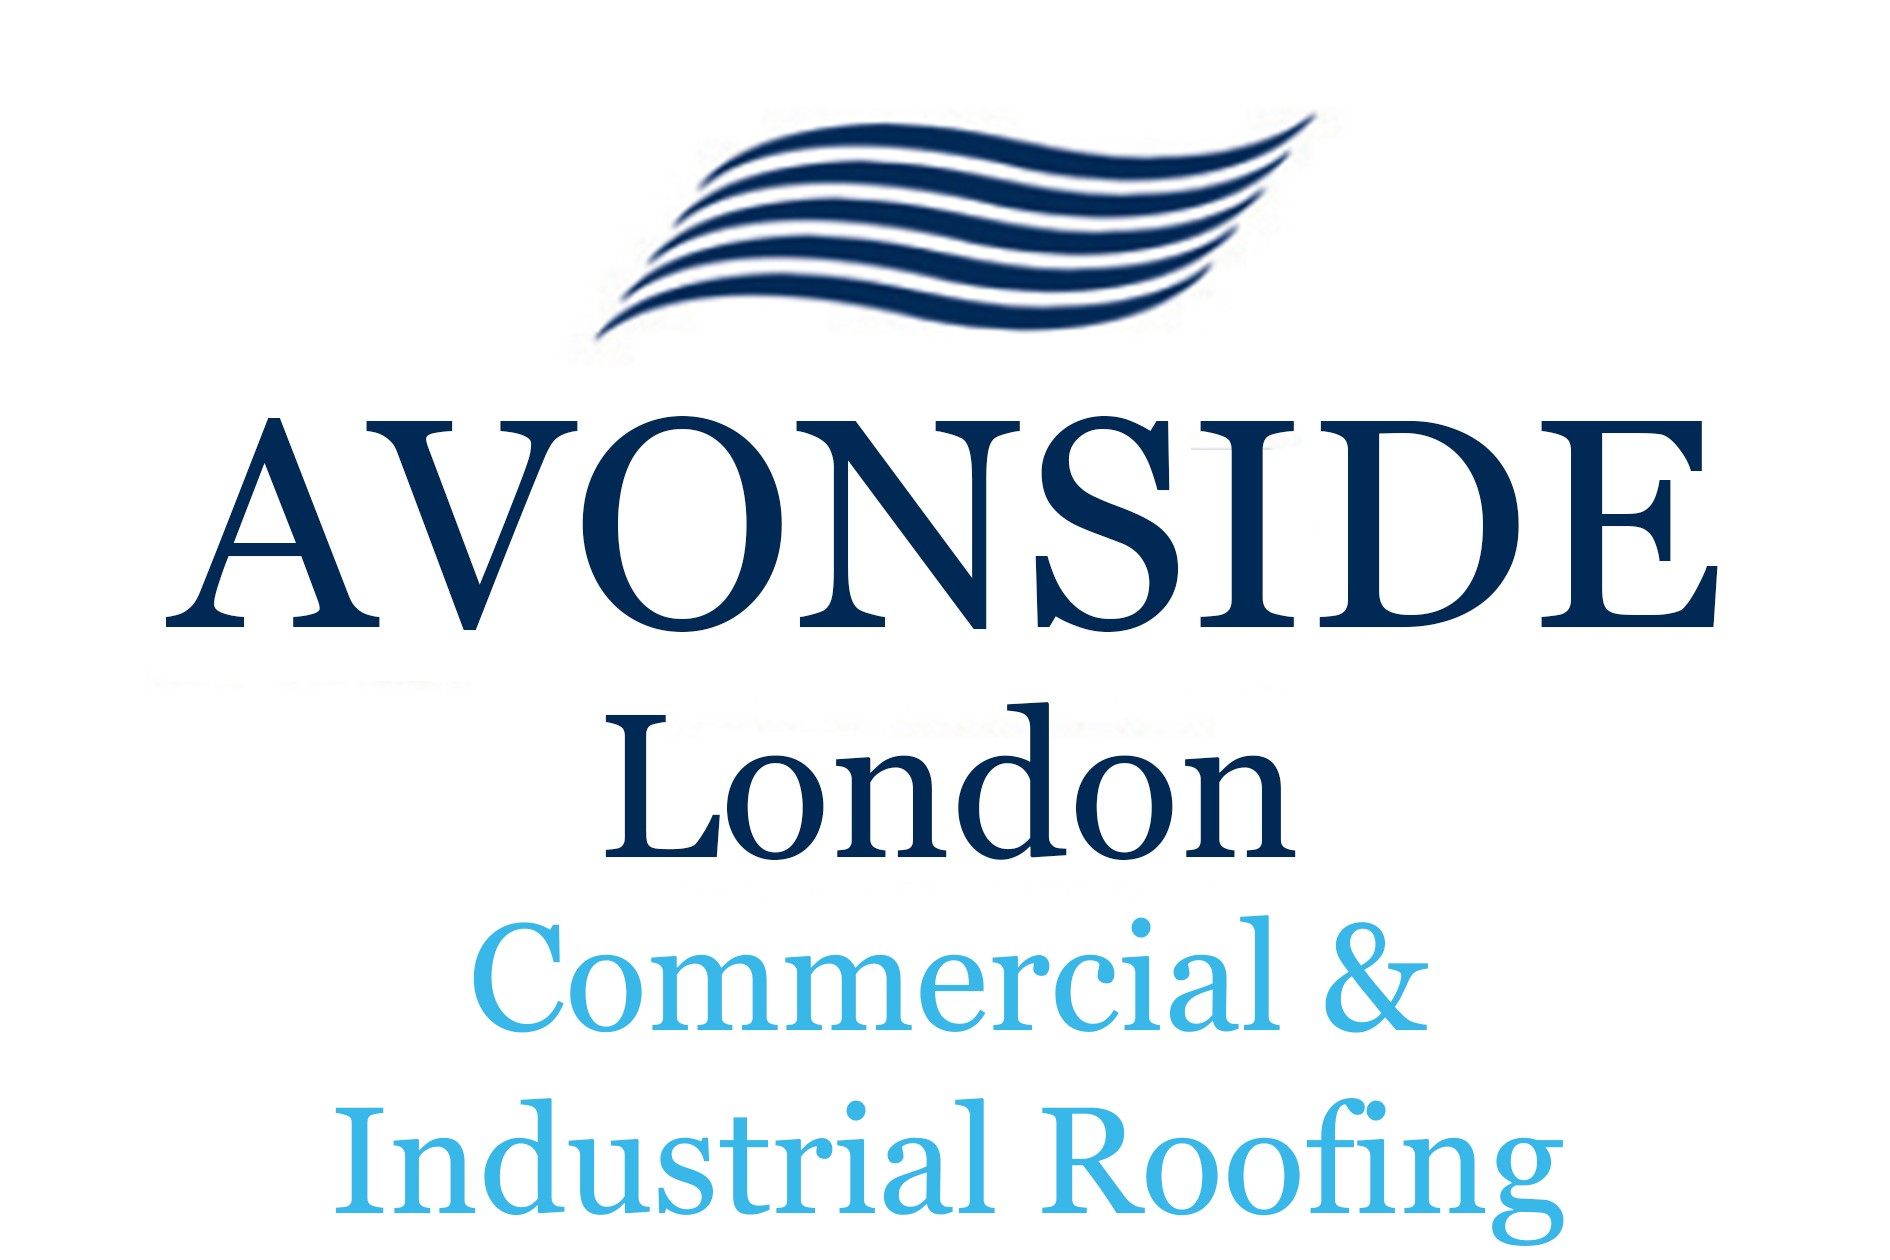 Avonside London Commercial and Industrial Roofing logo